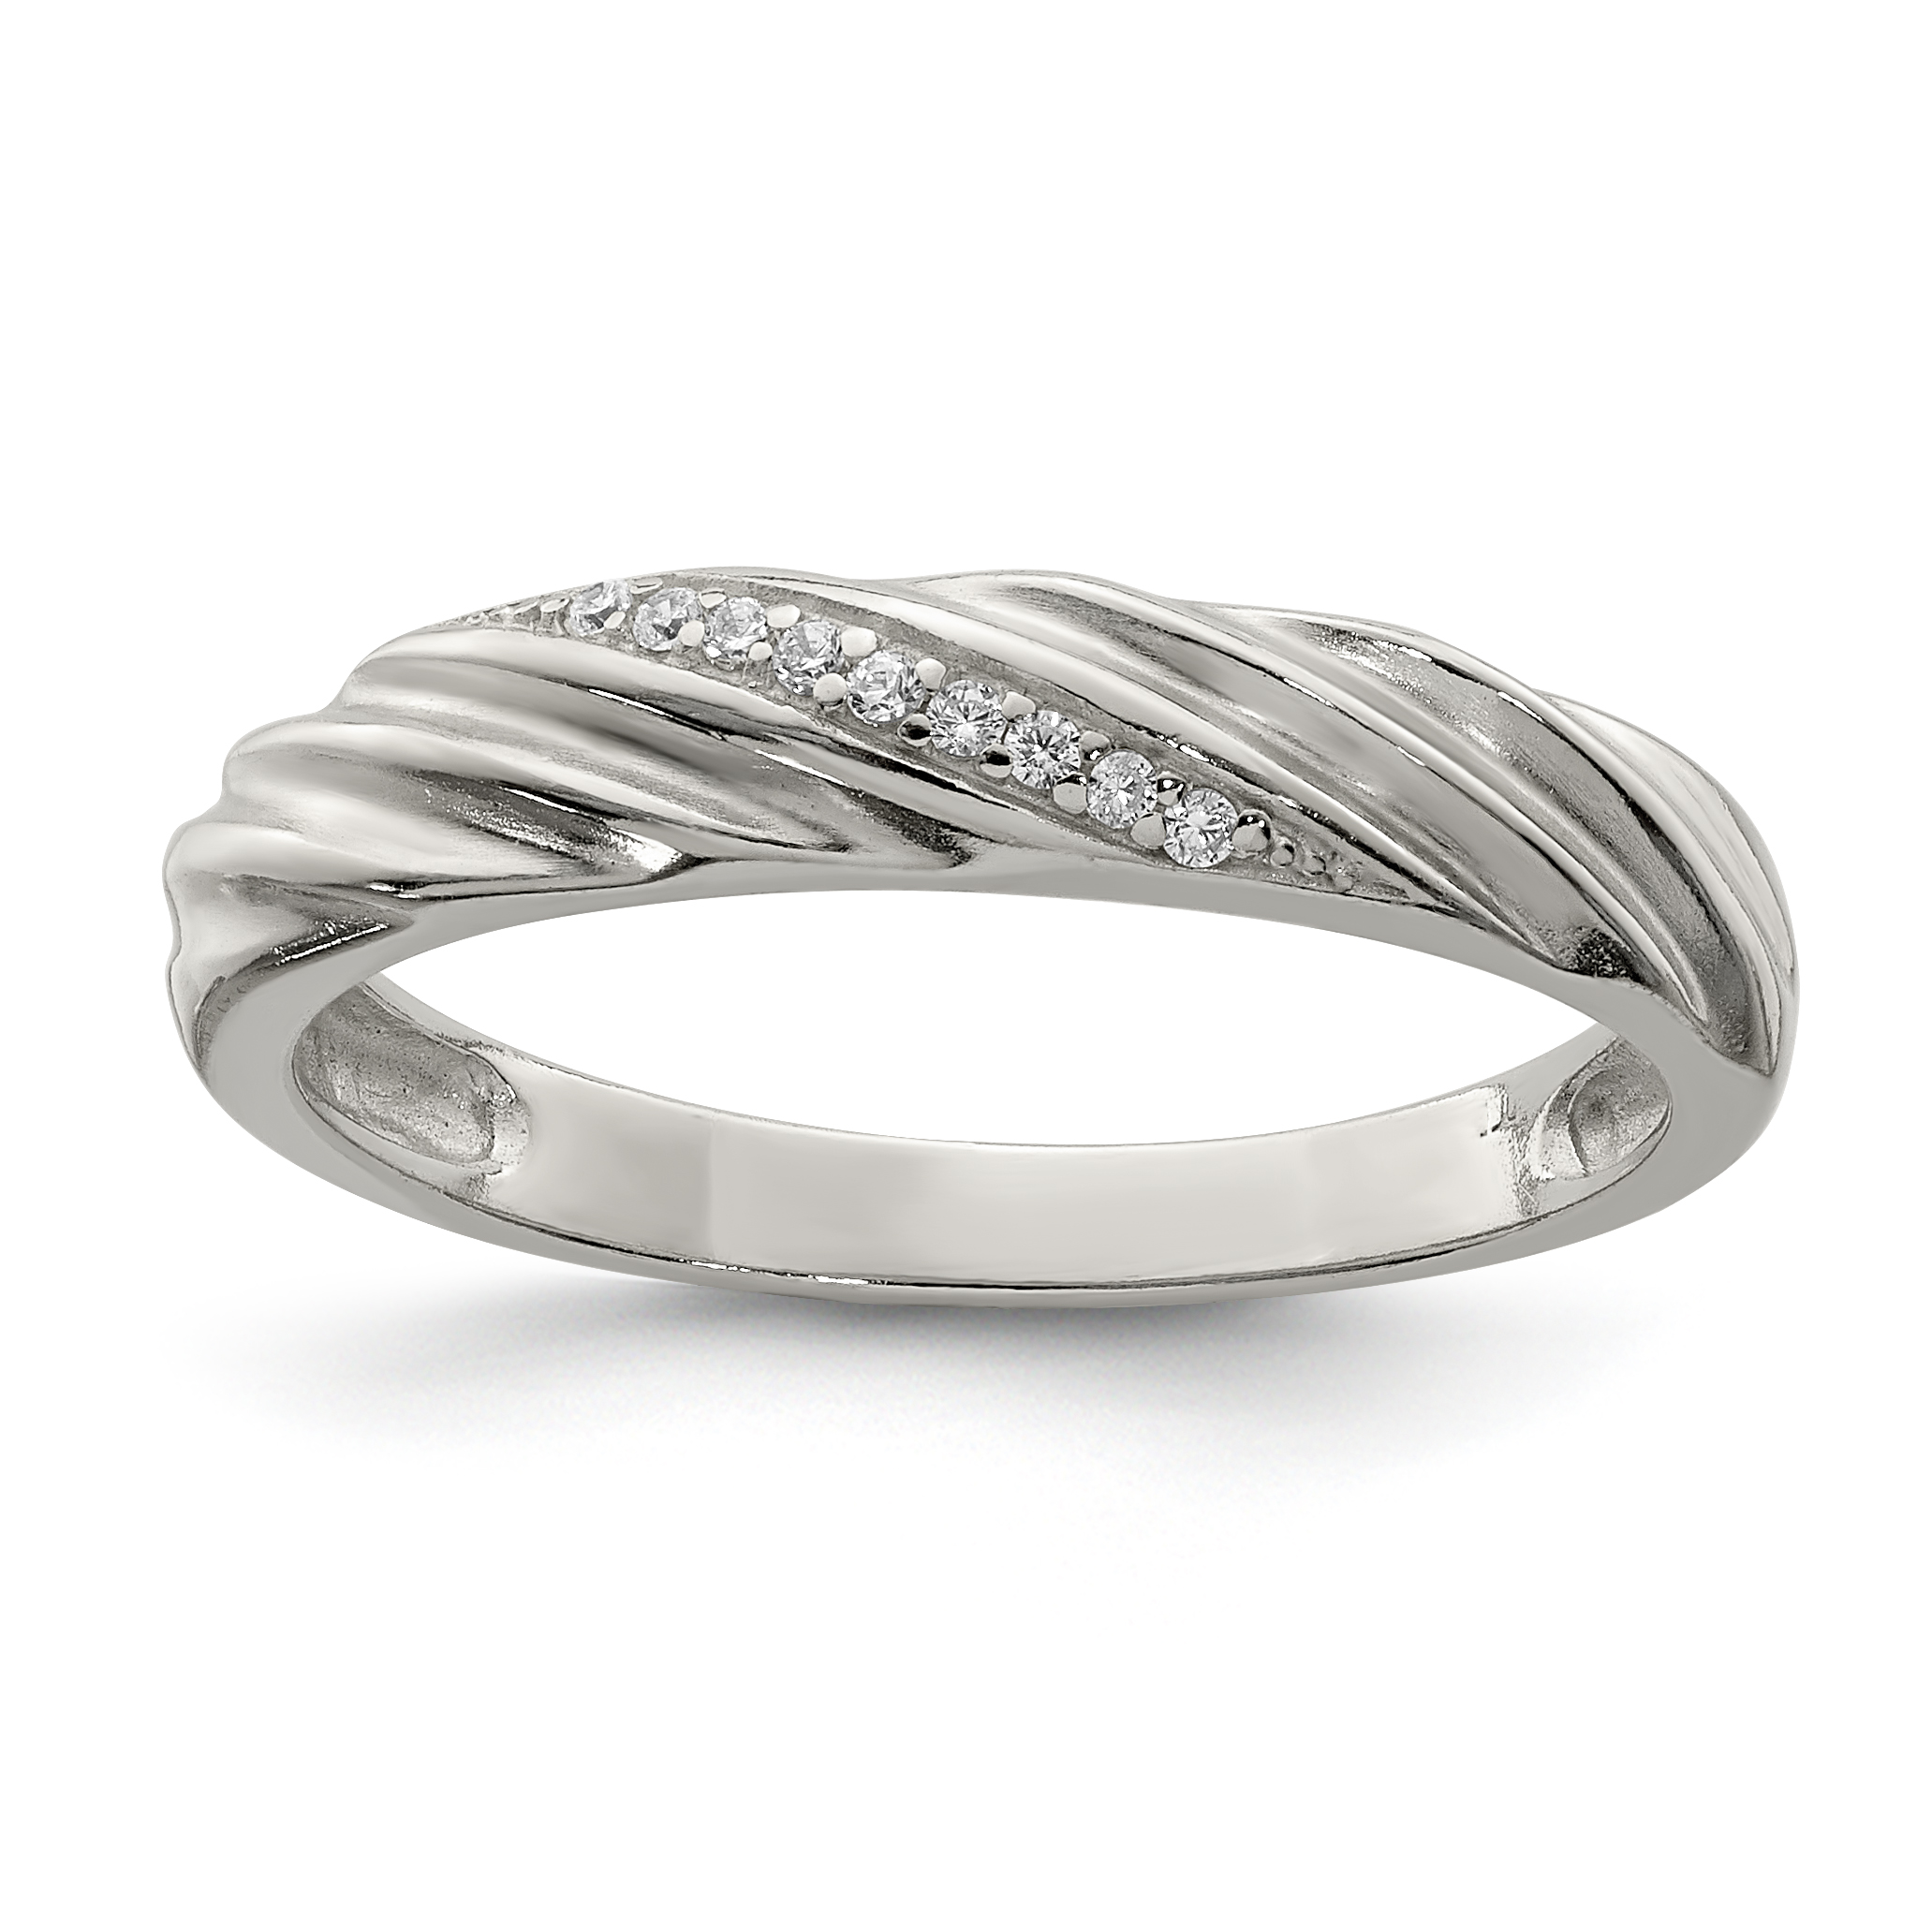 925 Sterling Silver Cubic Zirconia Cz Band Ring Size 7.00 Fine Jewelry Gifts For Women For Her - image 3 of 3